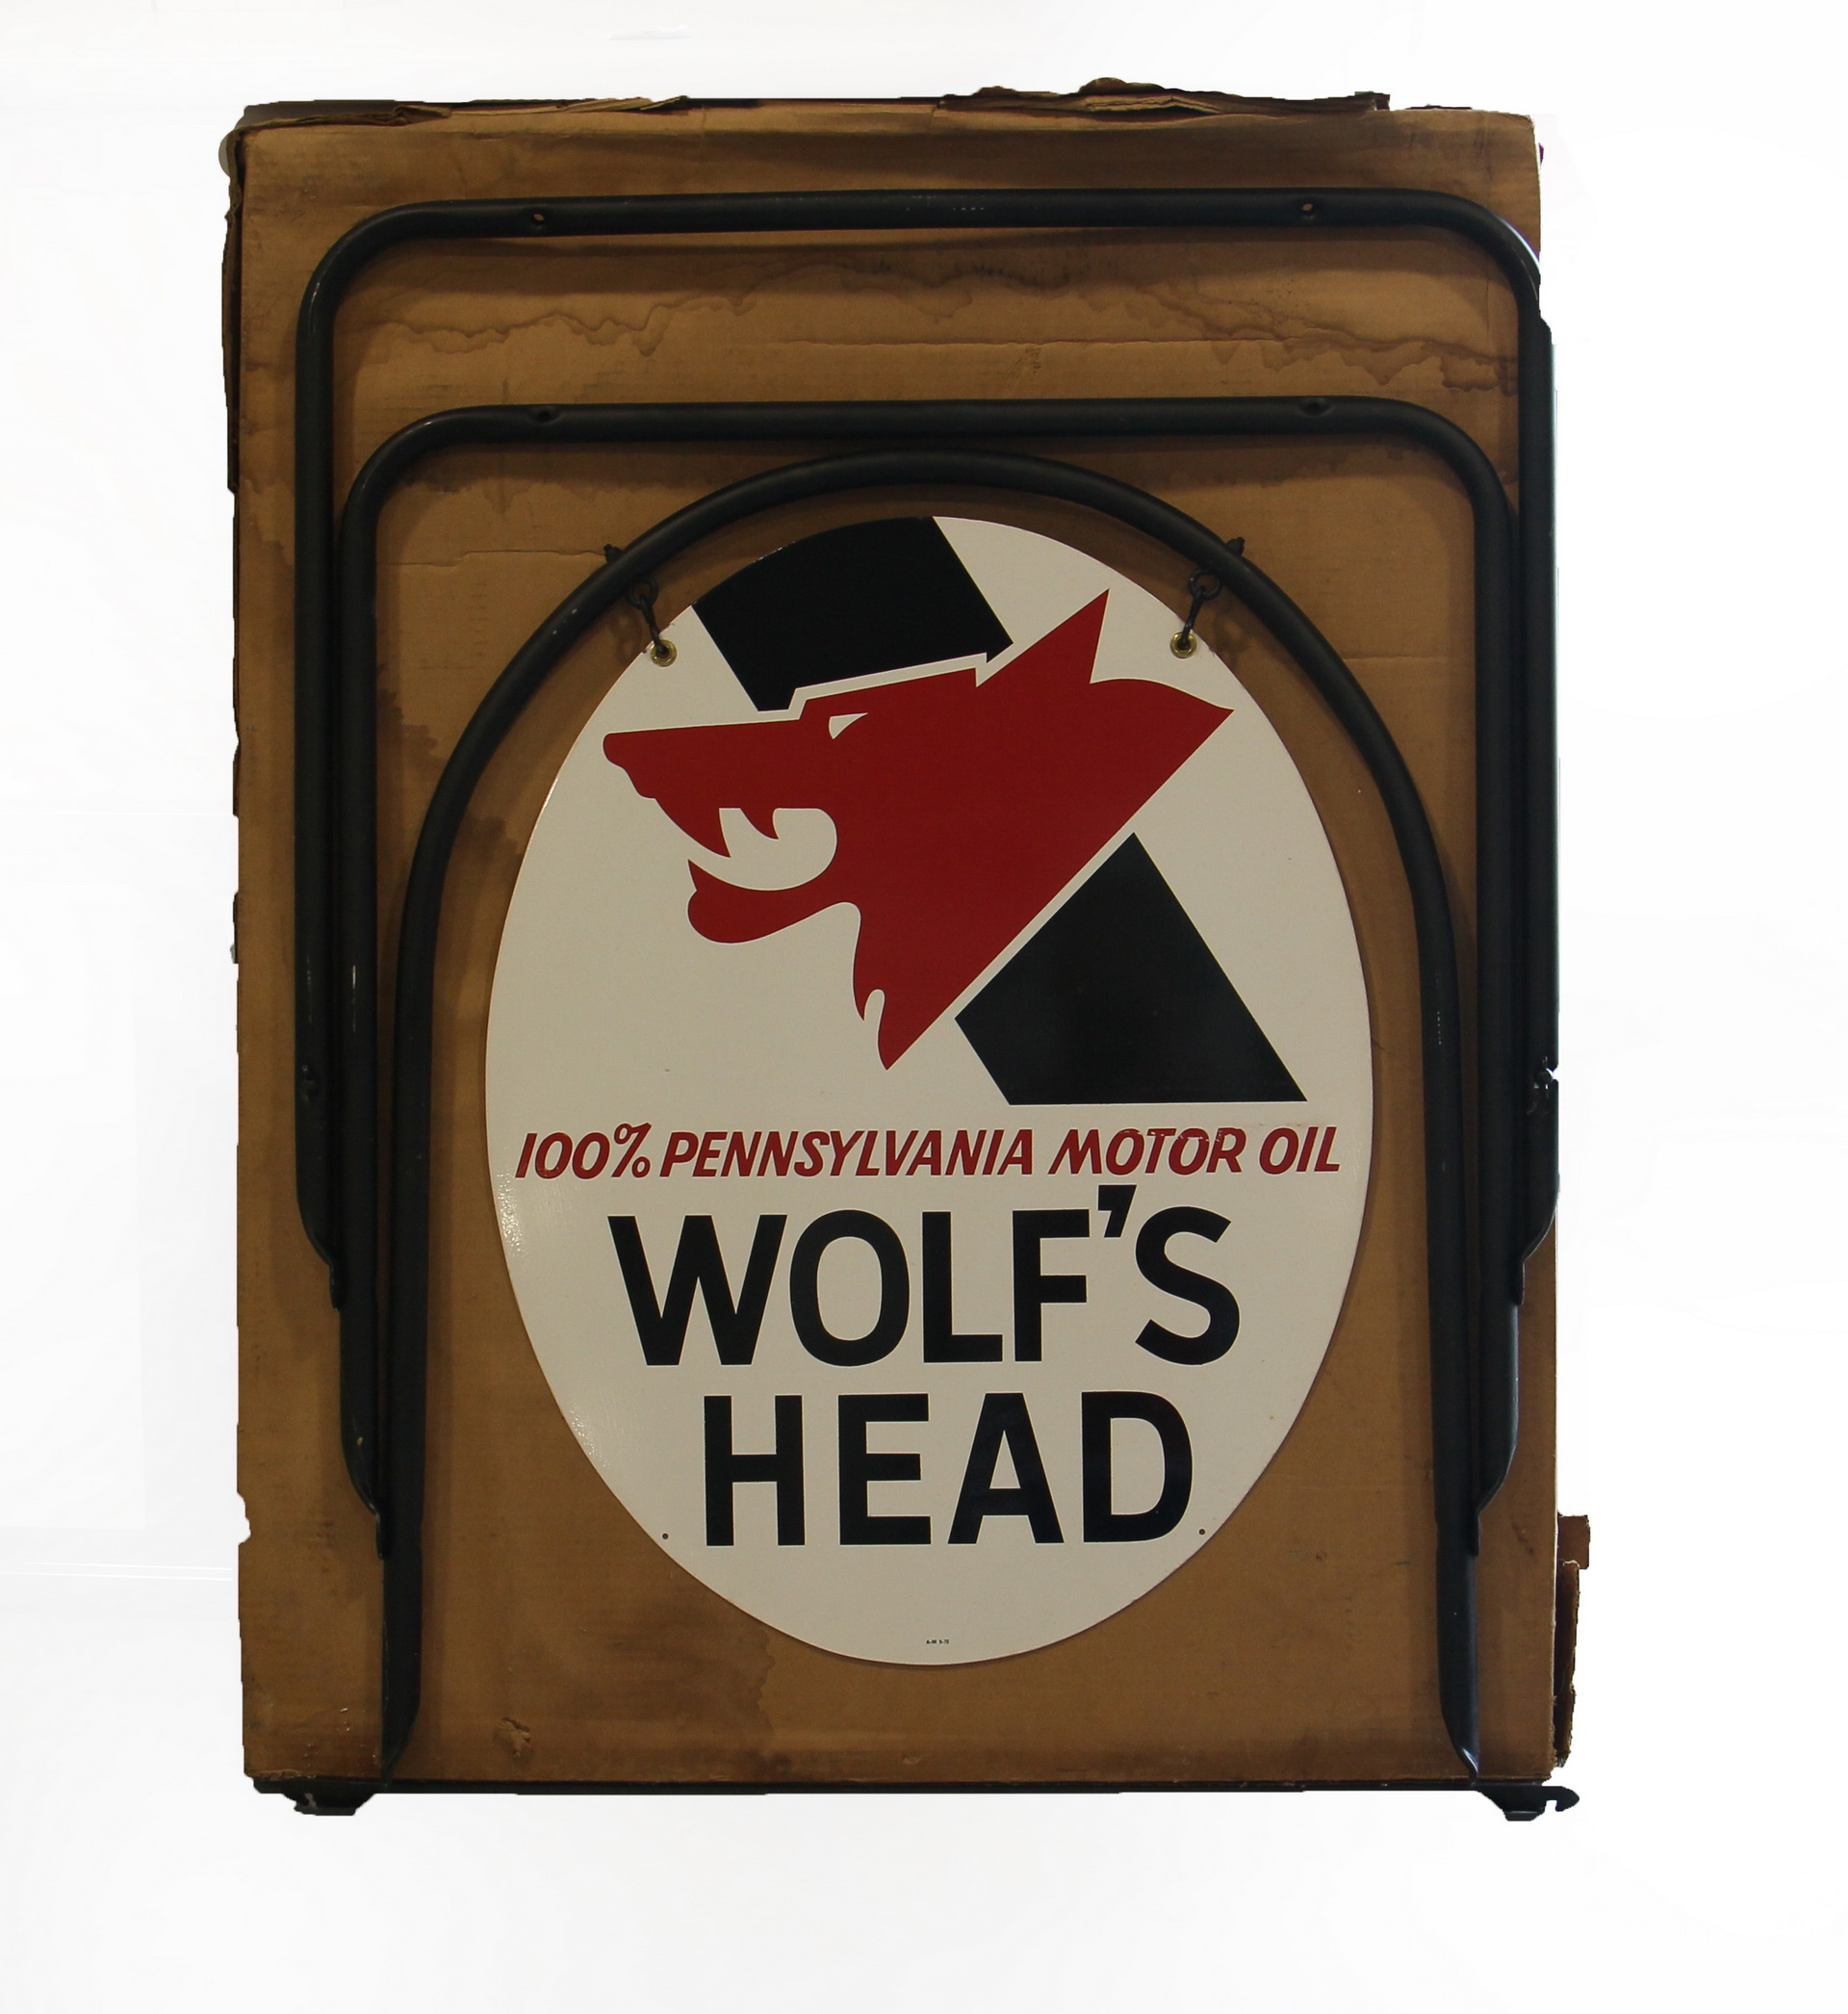 Wolf's Head DS Metal Curb Sign in Original Box